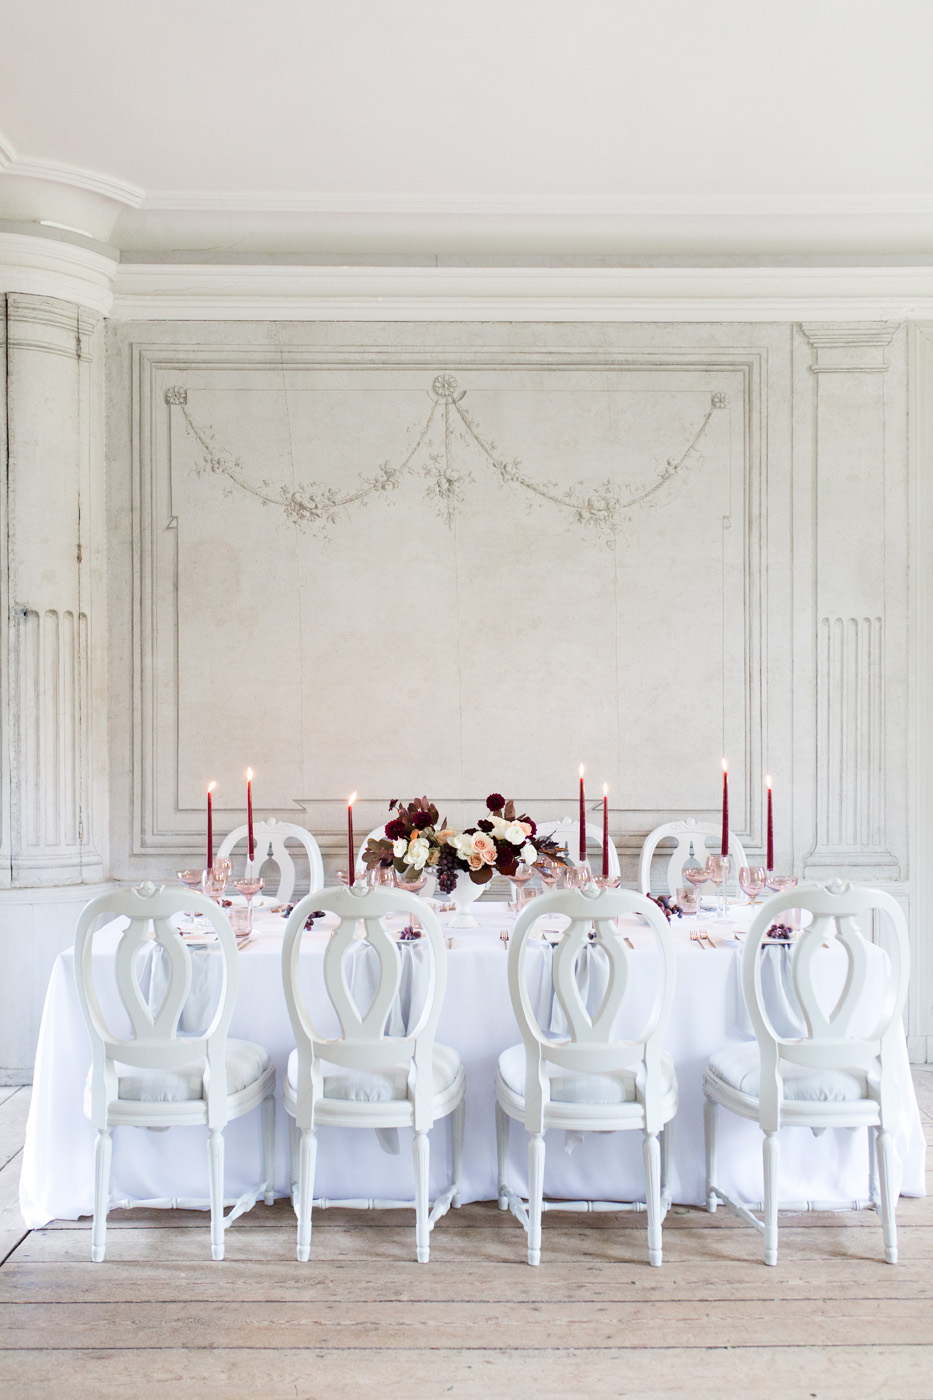 manor wedding reception table with white dior chairs and marsala candles